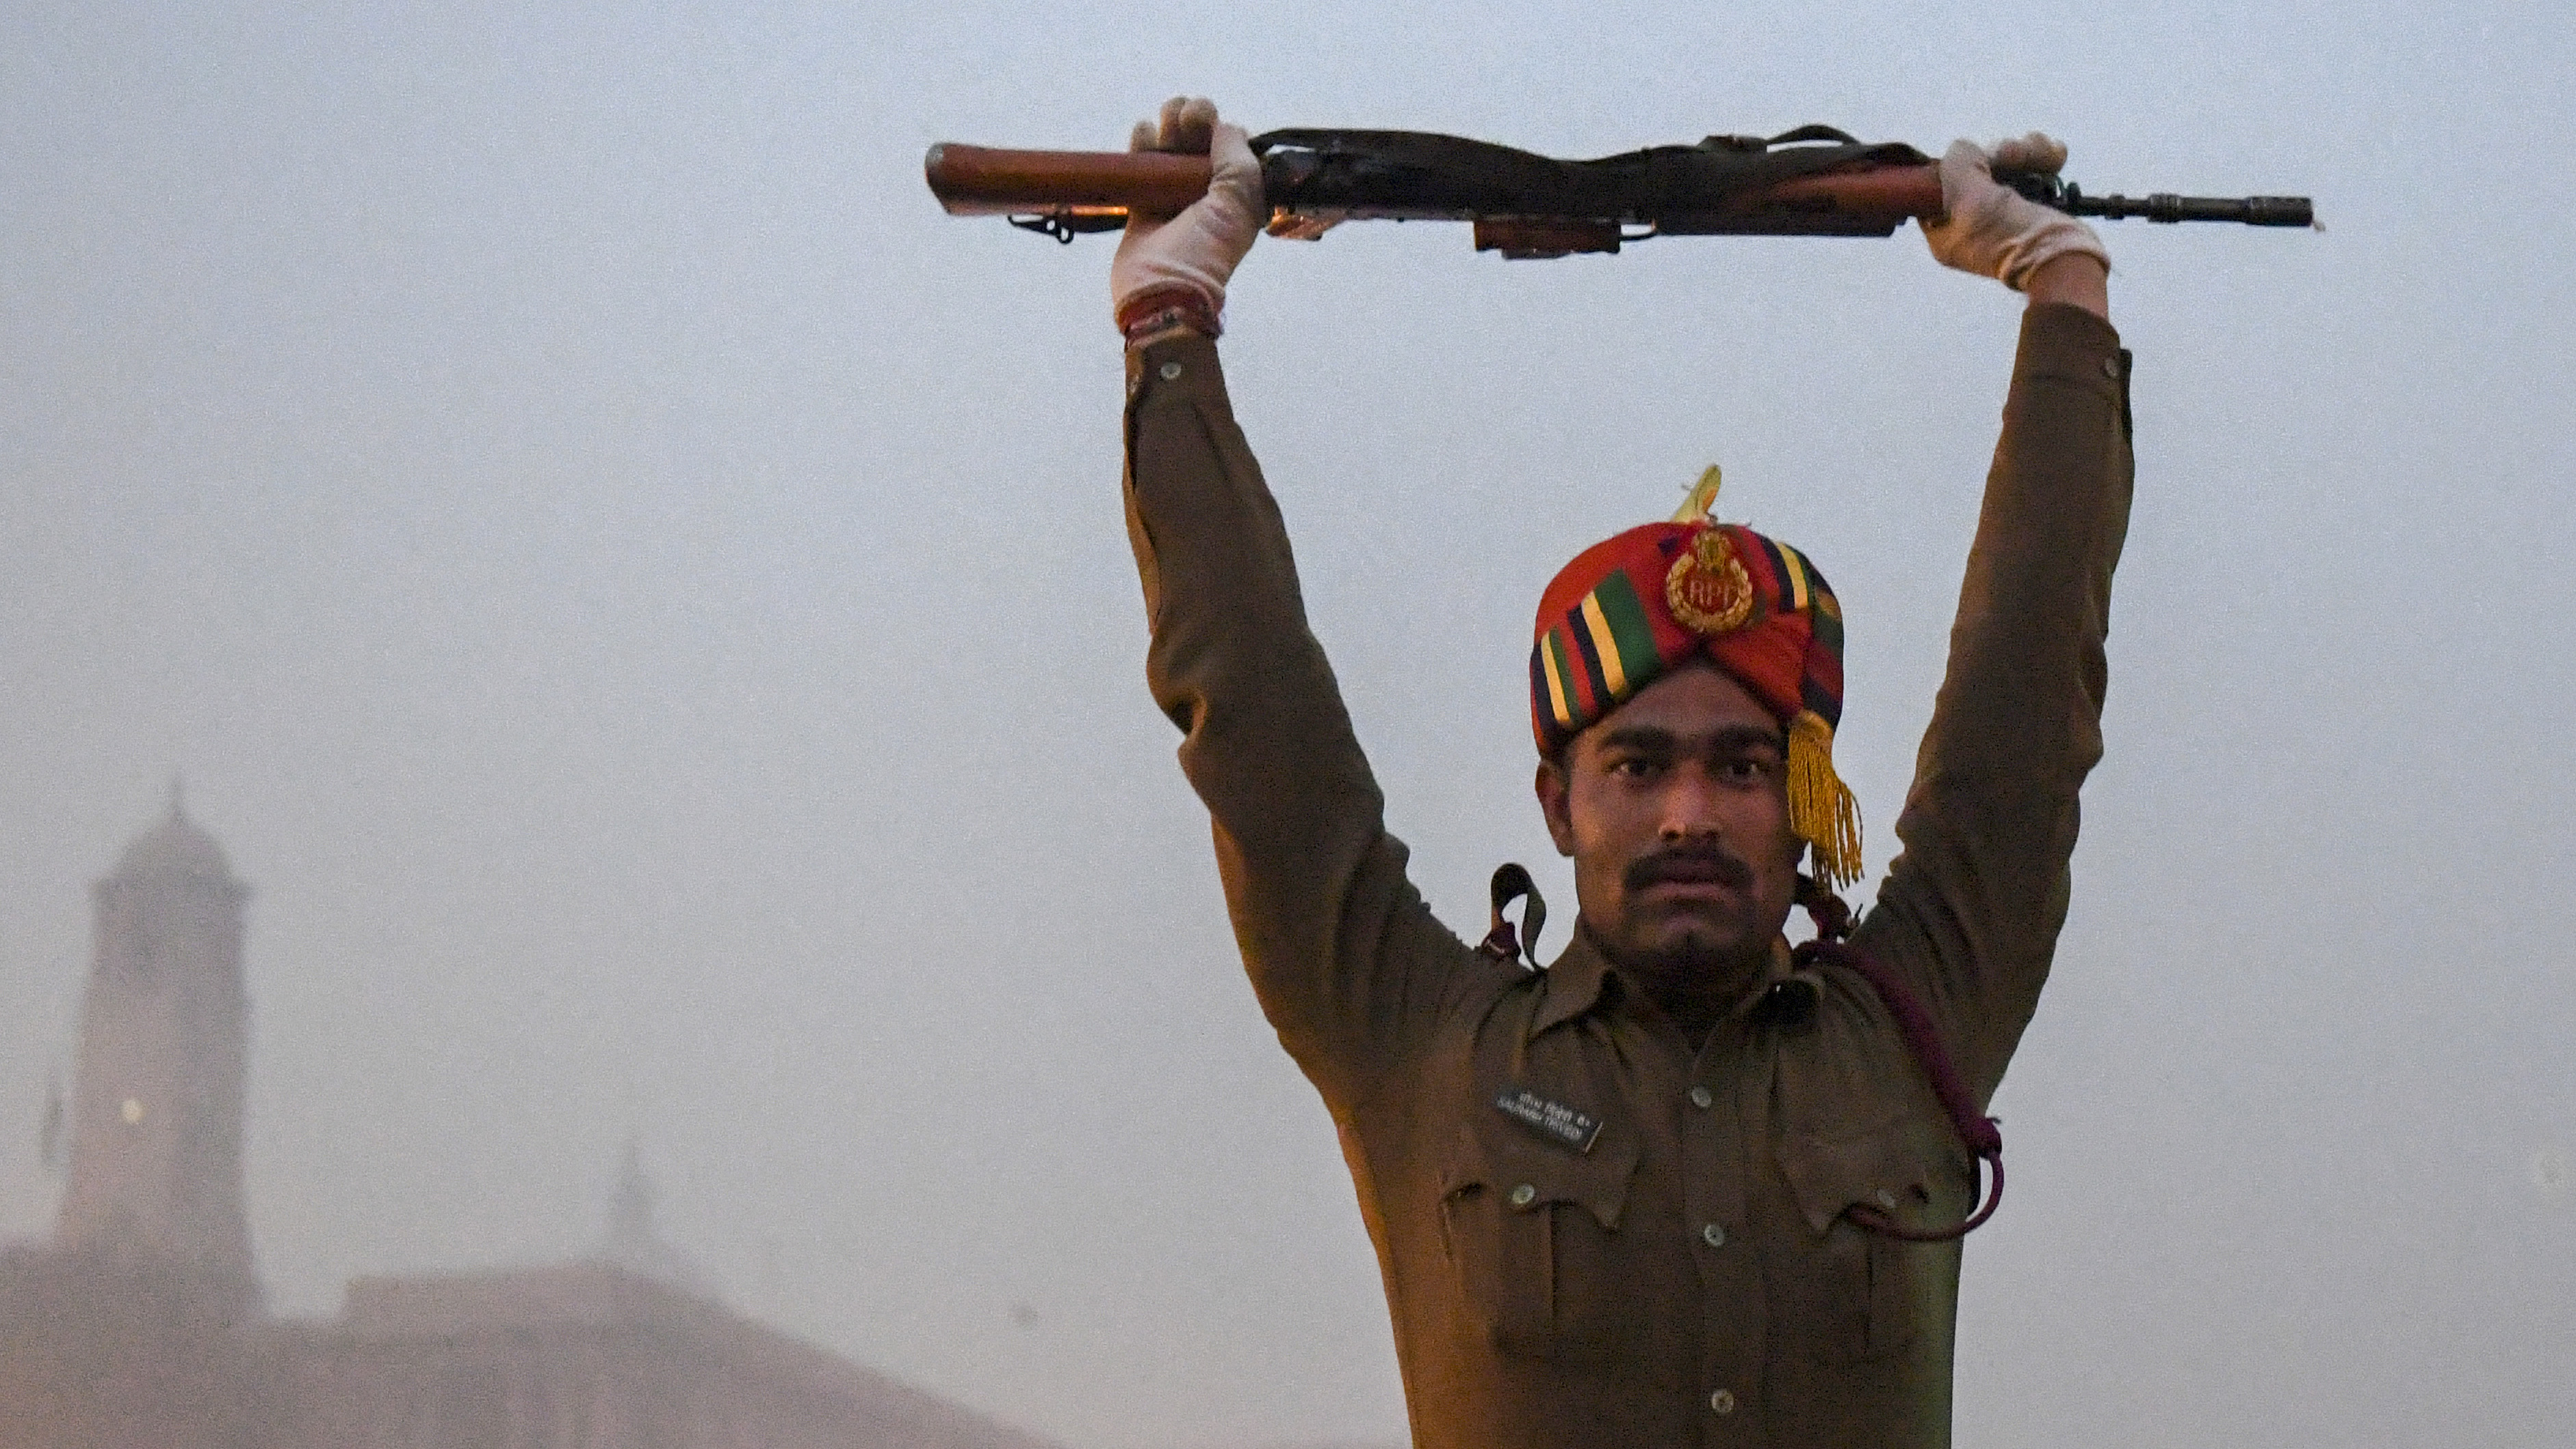 A member of the Indian Central Reserve Police Force (CRPF) warms up during the rehearsal for the upcoming Republic Day parade in New Delhi on January 2, 2019. - India will celebrate its 70th Republic Day on January 26. (MONEY SHARMA/AFP/Getty Images)